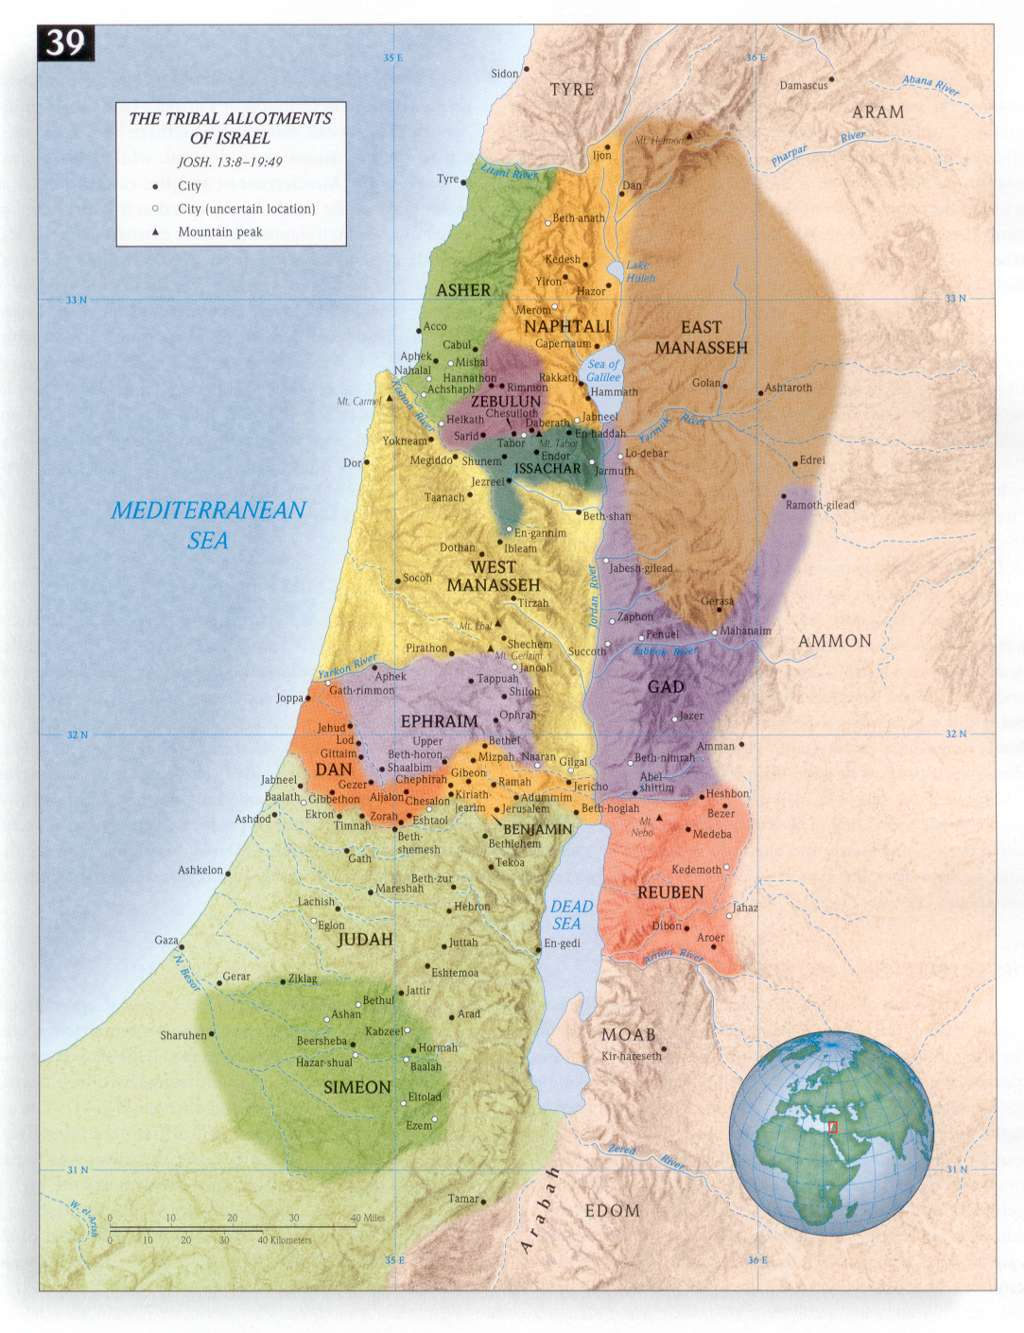 Bible Maps | Precept Austin on map of israel during jesus' time, current map of israel, map of jerusalem, map of judea, large map of israel, caesarea israel, map of israel and palestine, road map of israel, united kingdom monarchy of israel, map of middle east, map of jordan, map of holy land, photographs of israel, map of west bank barrier, map of israel joshua, map of biblical israel, map of greece, modern day map israel, map of israel today, map of promised land,